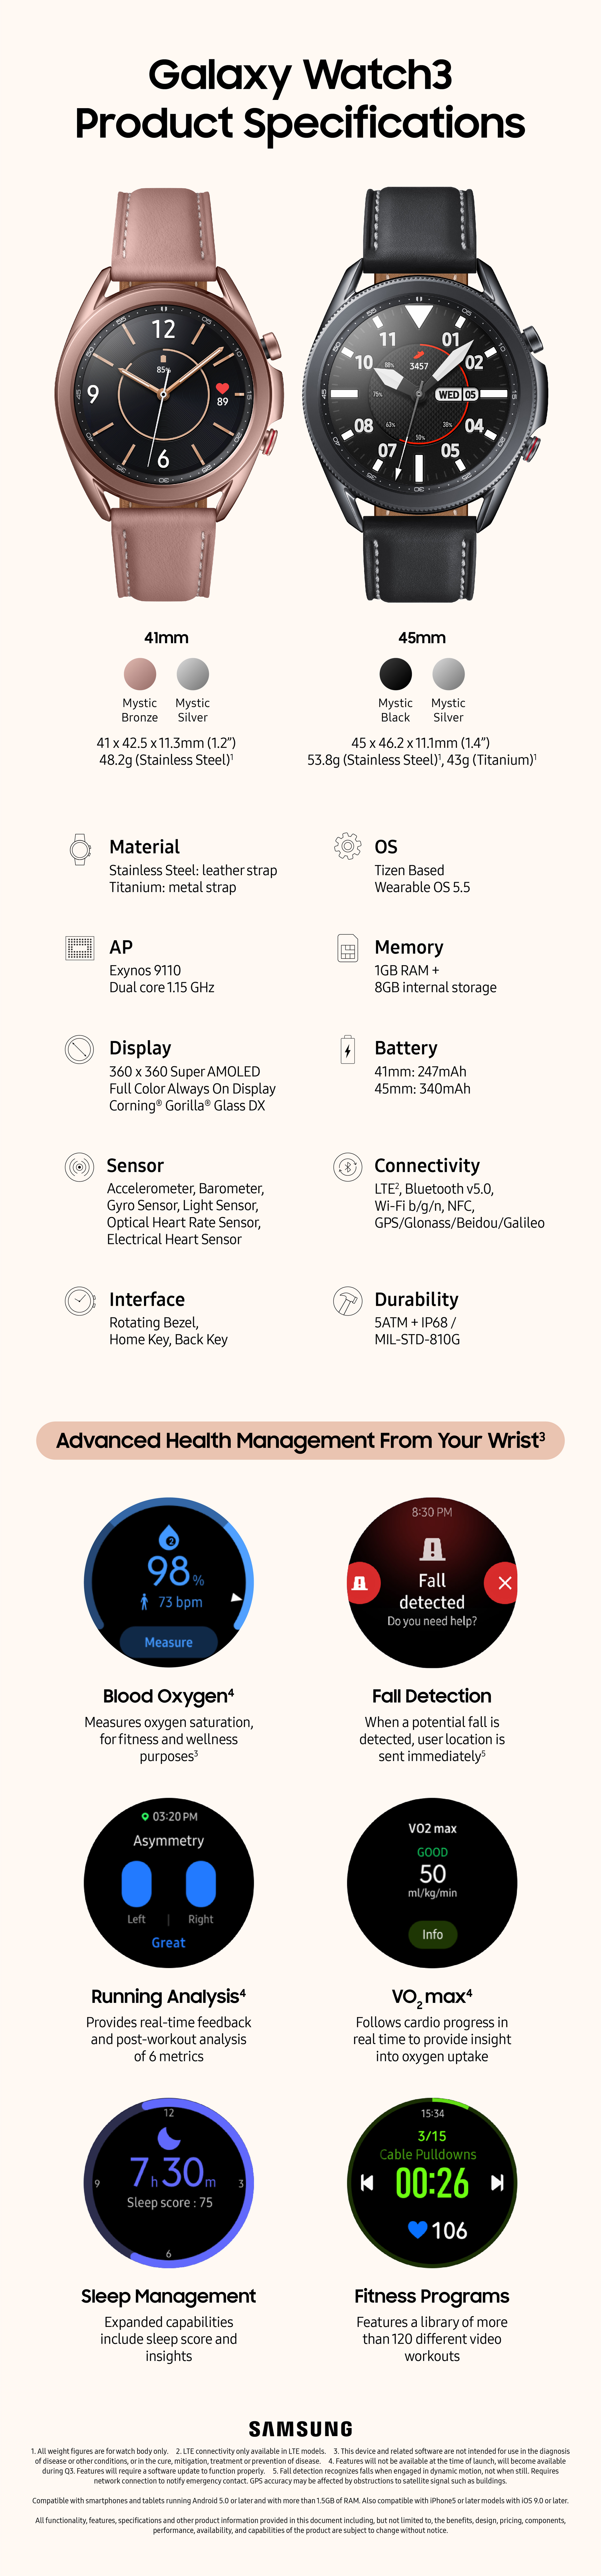 [Infographic] Galaxy Watch3: A Timeless and Versatile Smartwatch with Advanced Health Tech